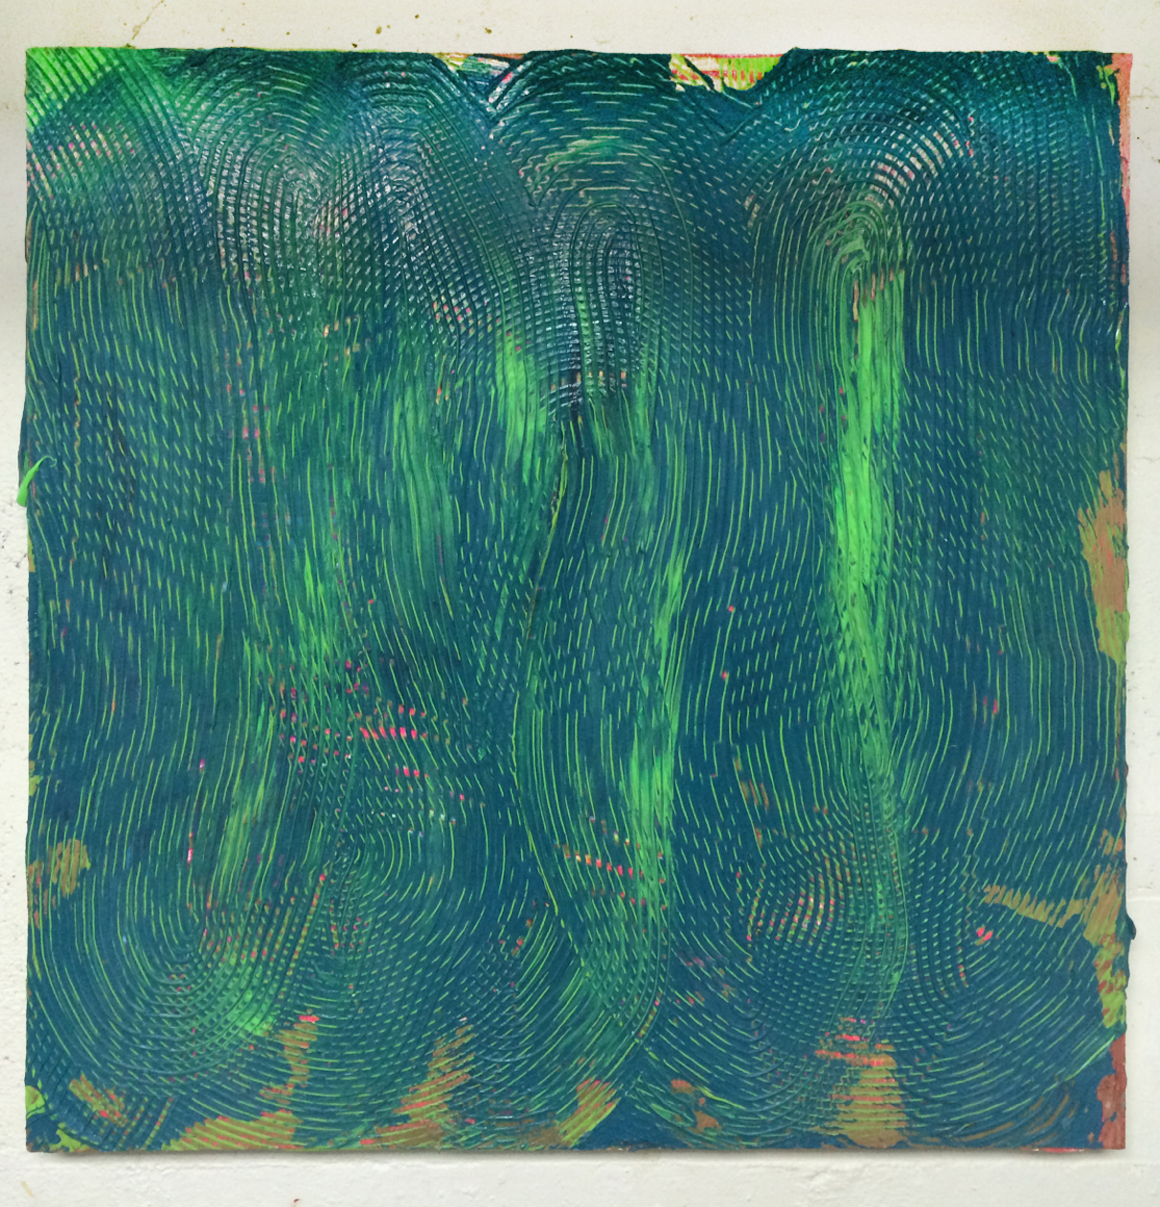 <p><em>Blue and Green</em><span class='media'>acrylic and spray paint on panel</span>24 x 24 in  (61 x 61 cm)<br>2014<br><a class='inquire' href='mailto:info@gildargallery.com?subject=Artwork Inquiry ABAT0017&body=I am interested in finding out more about Blue and Green by Adam Bateman'>Inquire</a></p>